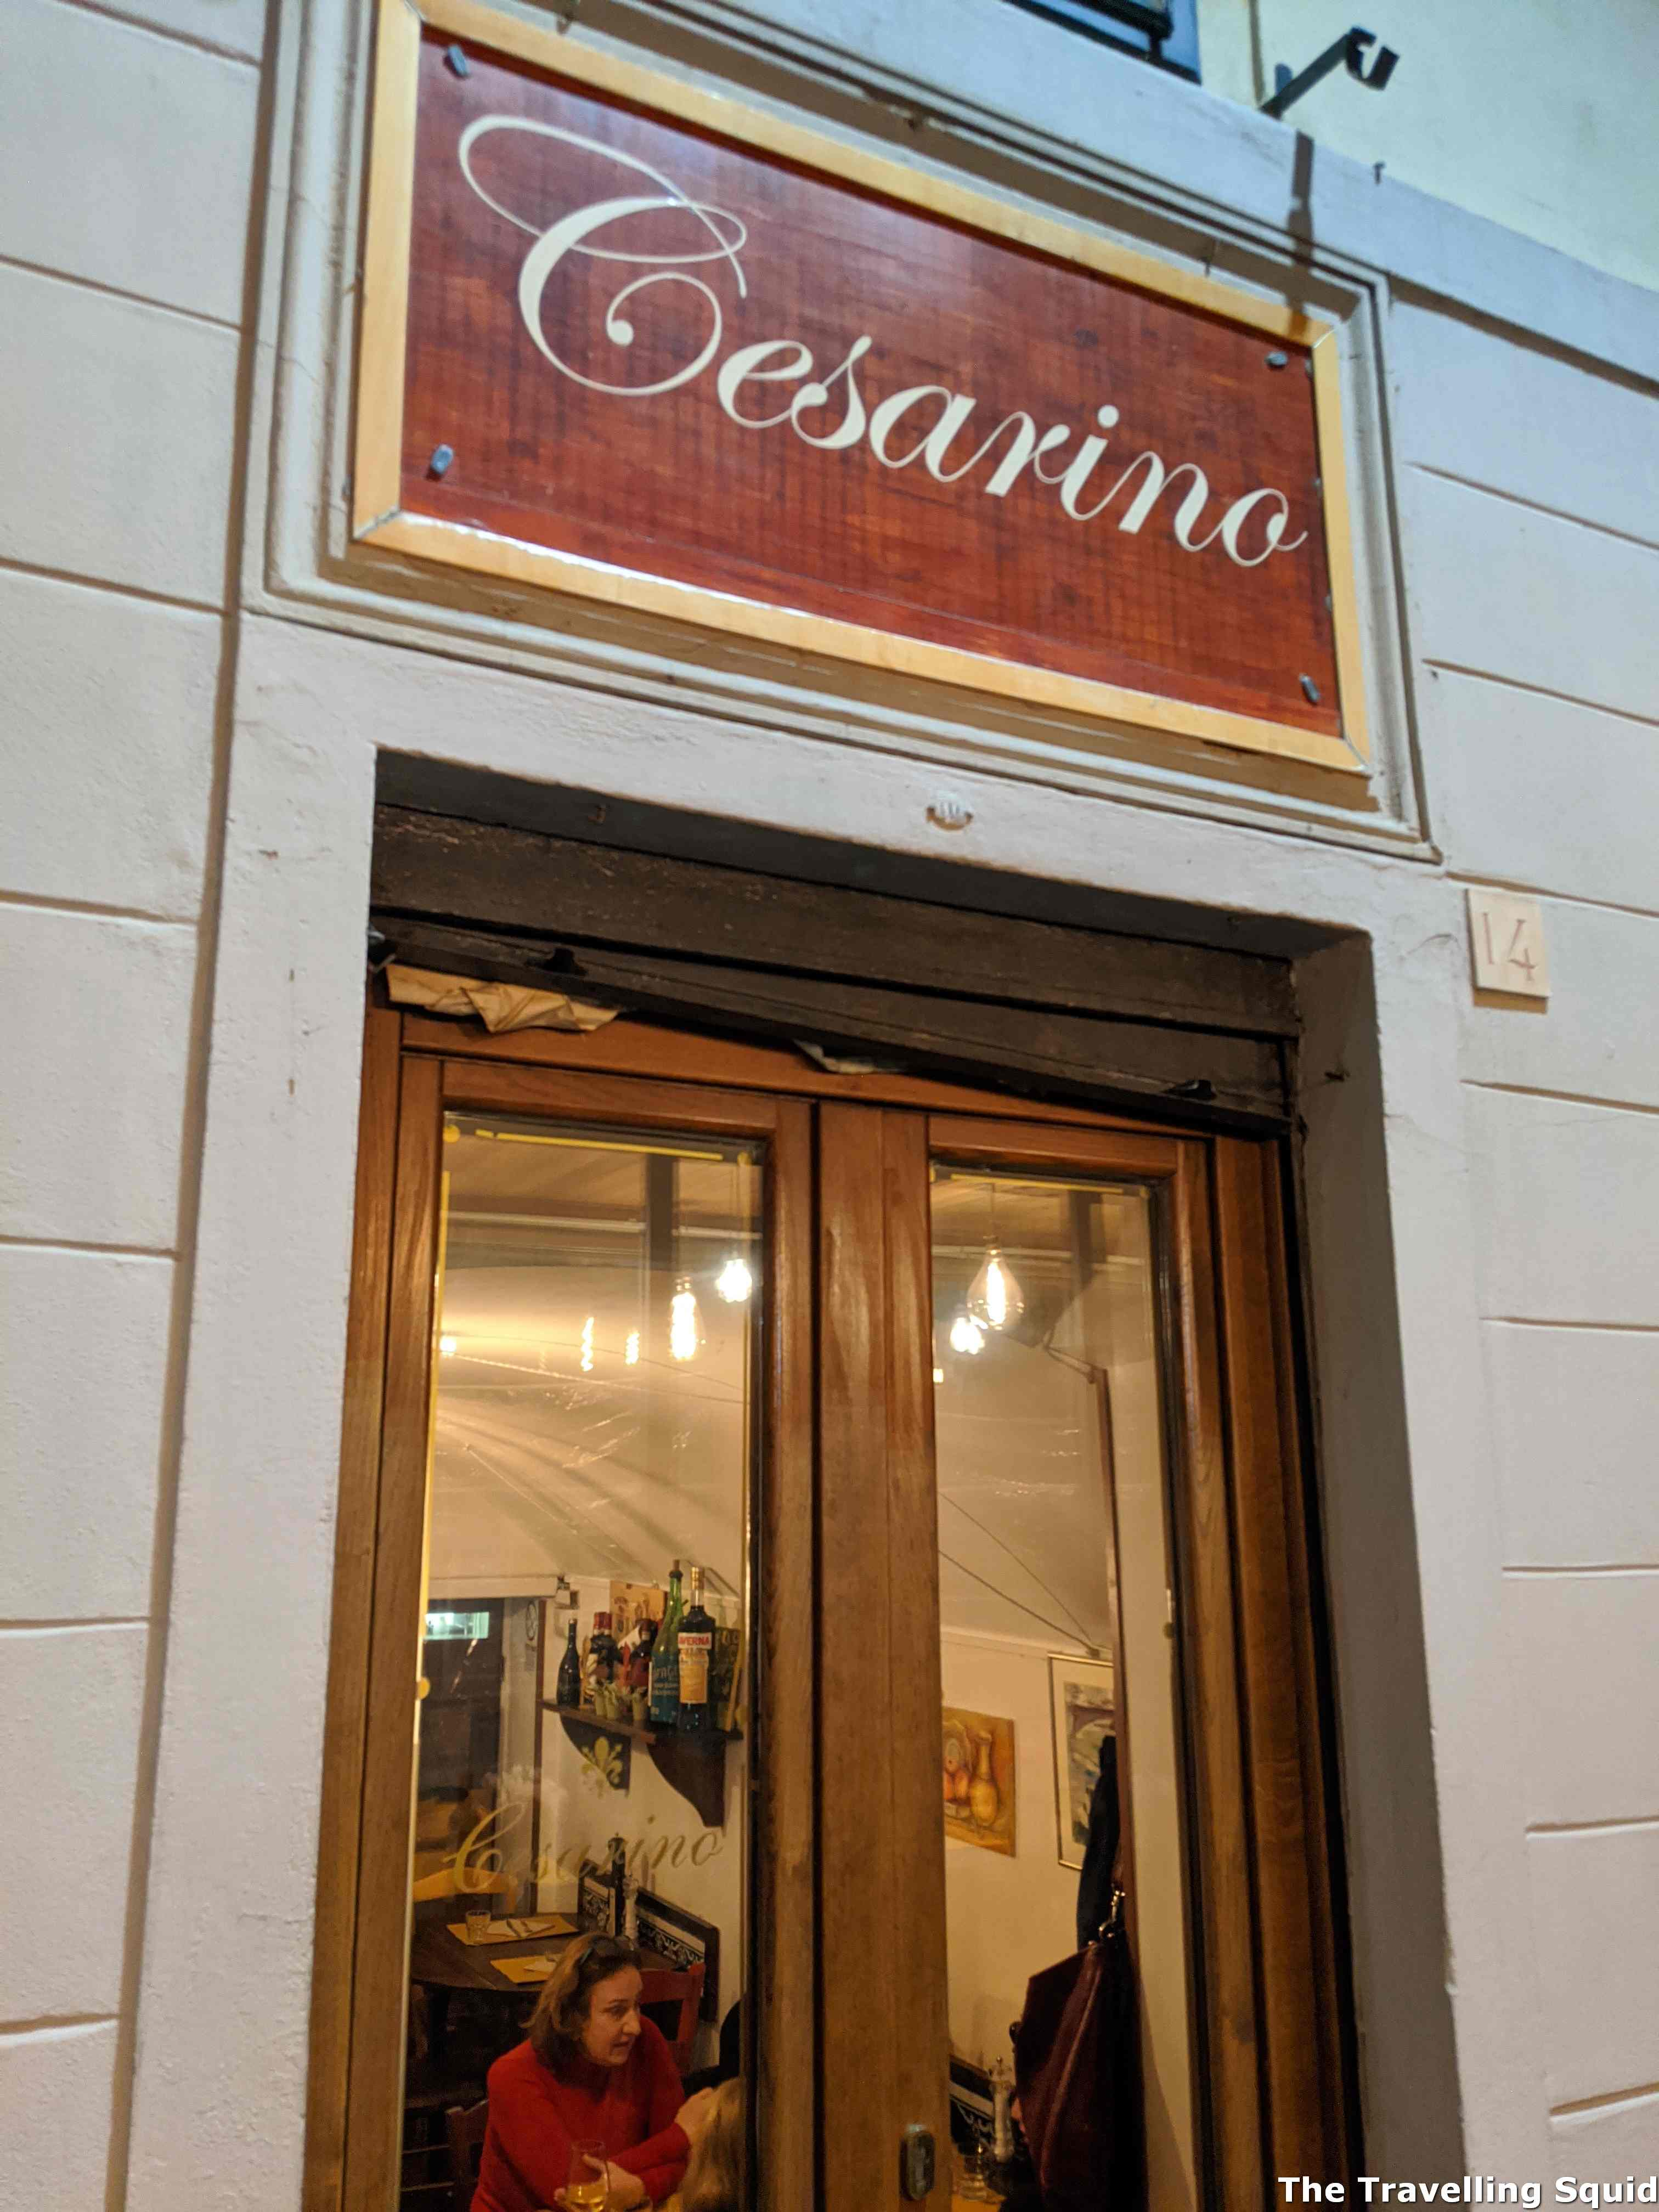 dinner at Trattoria Cesarino in Florence